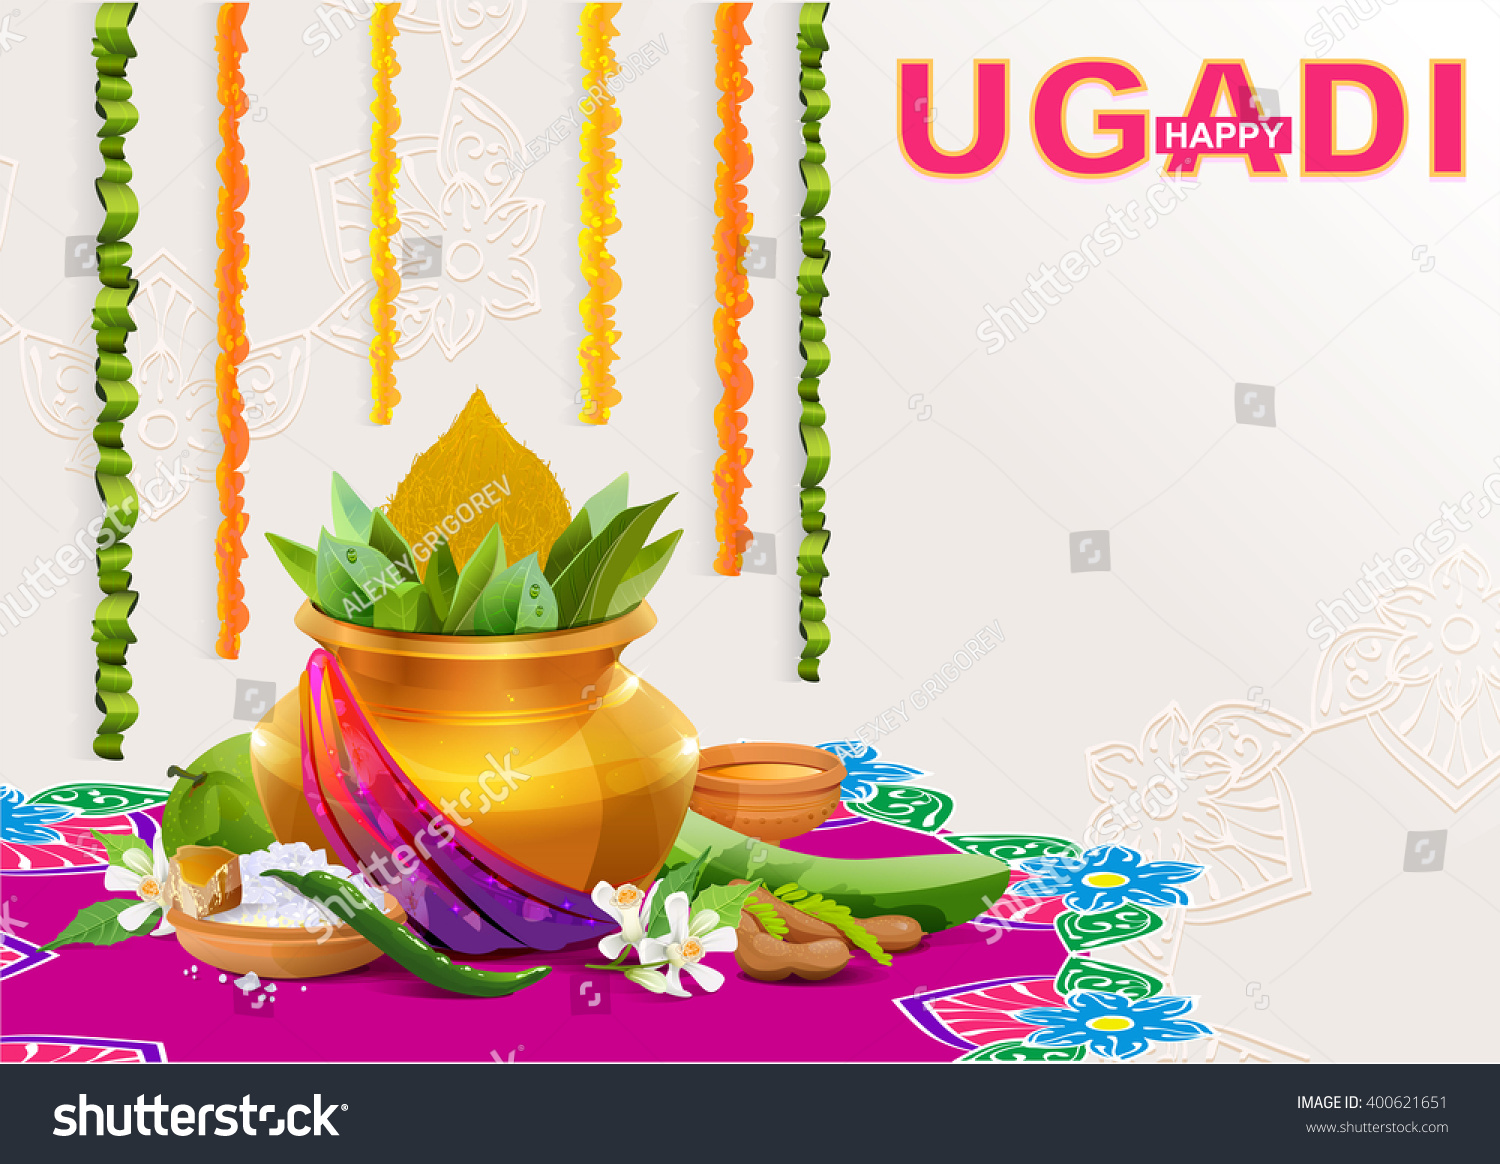 Happy ugadi template greeting card holiday stock vector 400621651 happy ugadi template greeting card for holiday gold pot with coconut illustration in kristyandbryce Images